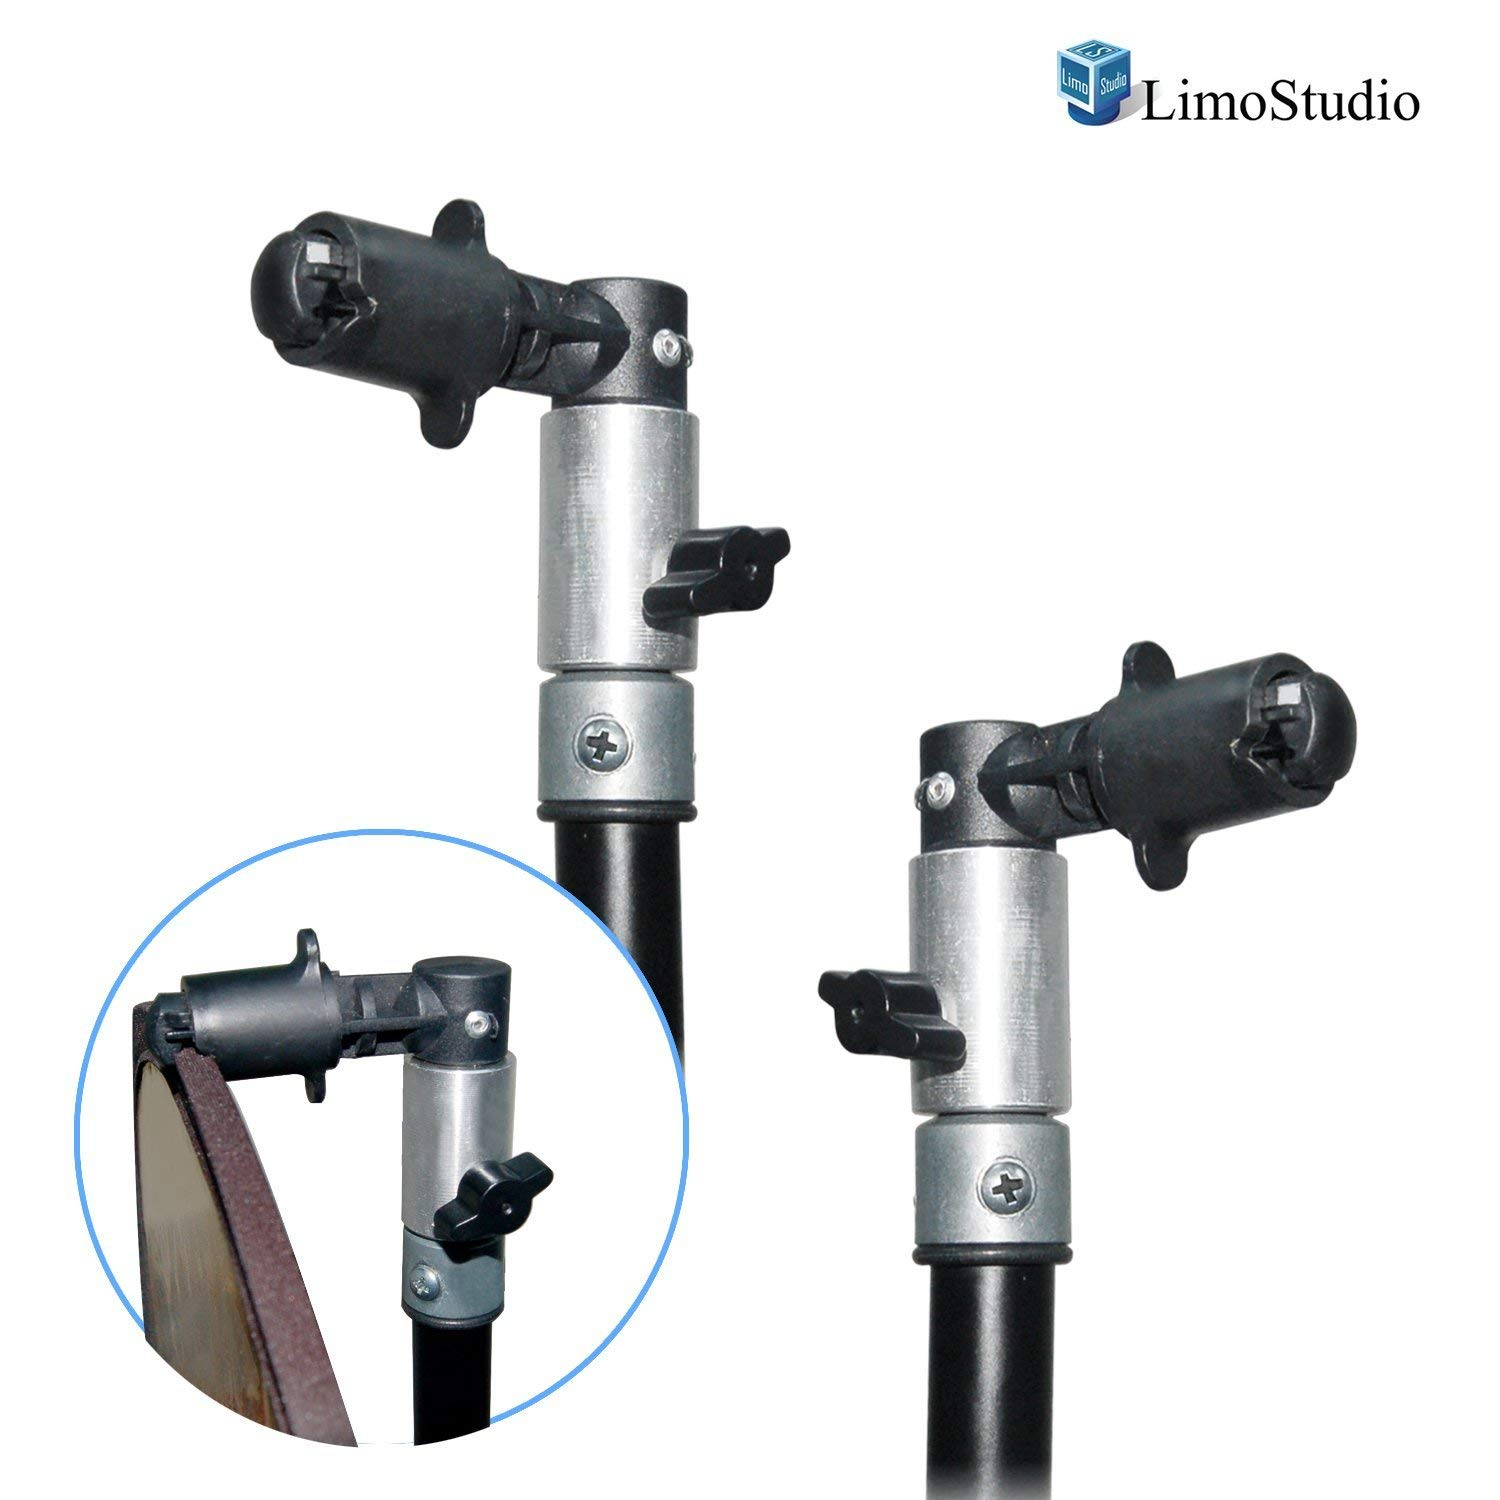 Limostudio Photo Video Photography Studio Reflector Disc Holder Clip for Light Stand AGG1411